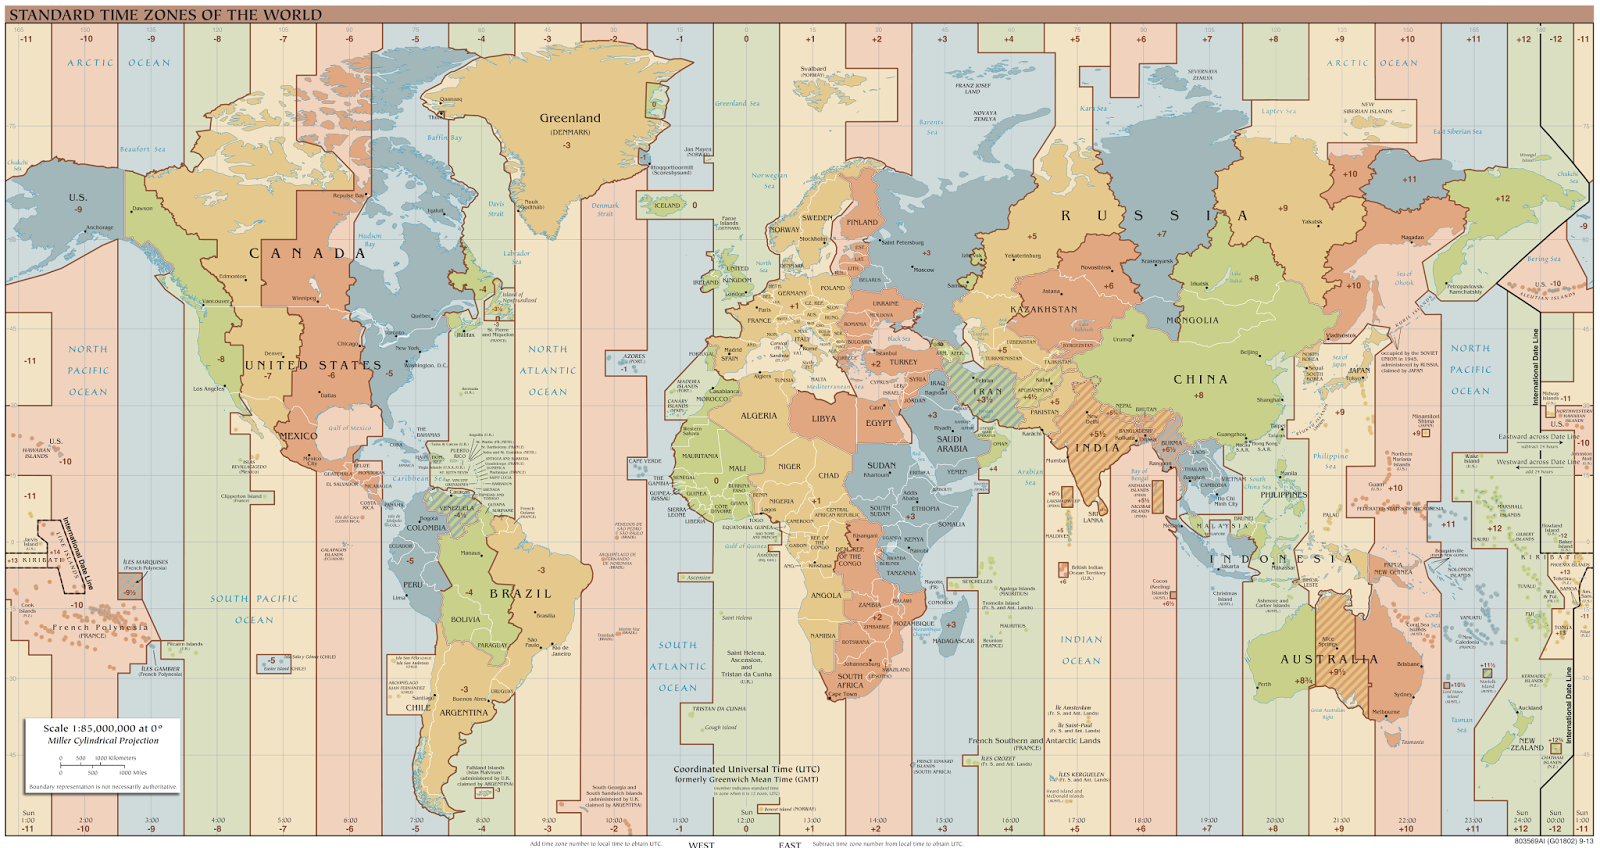 what time zone is cdt